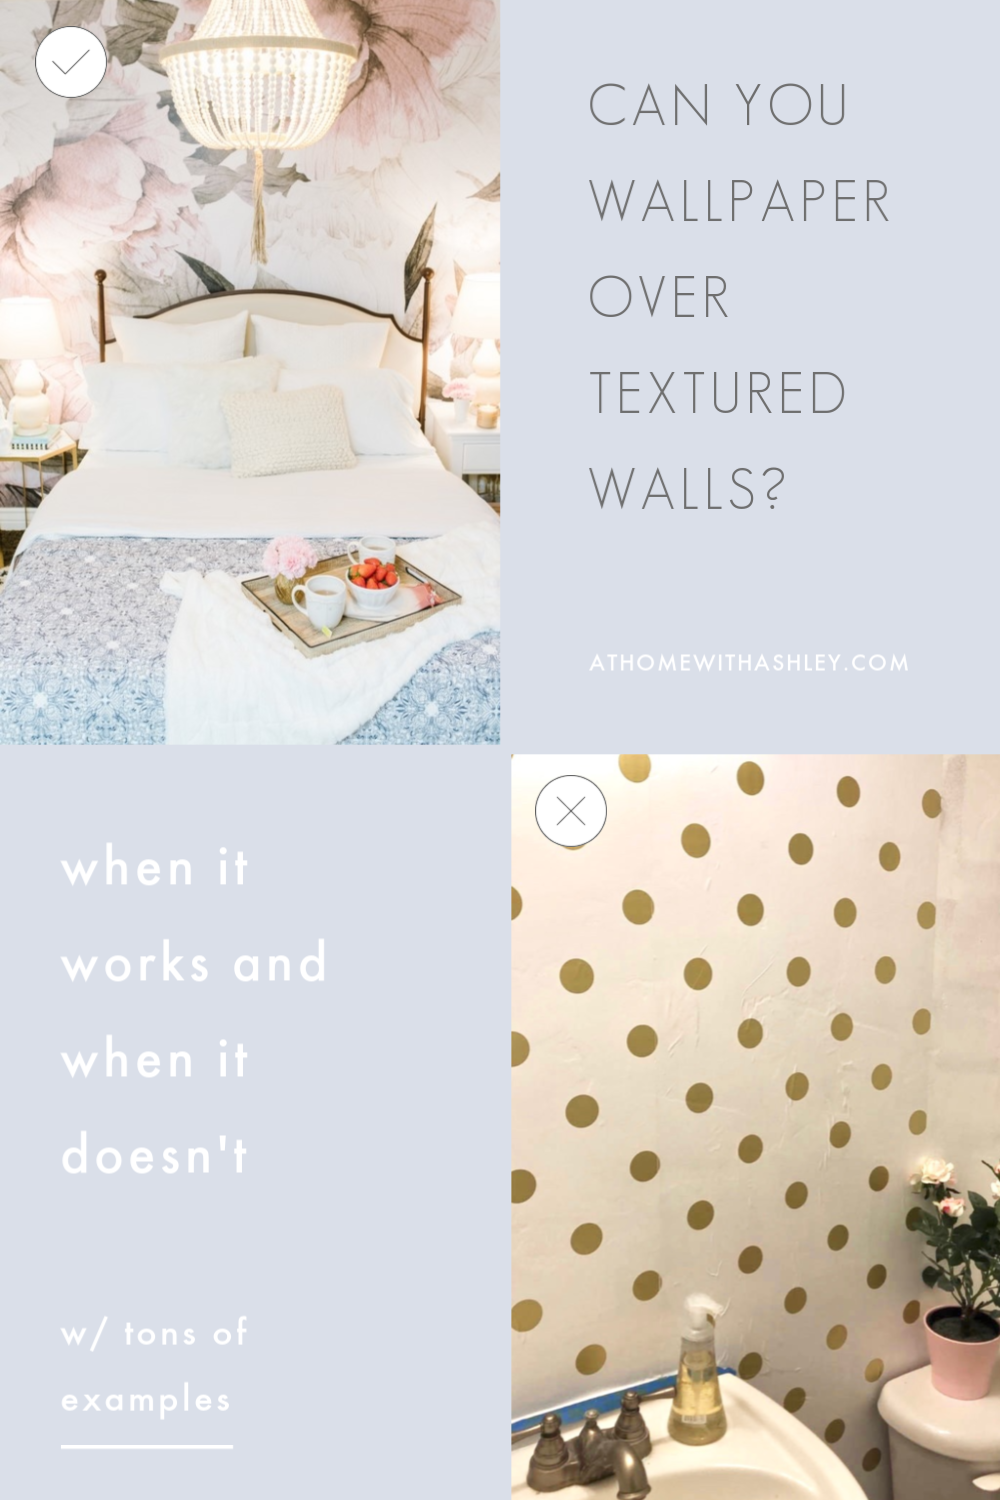 Can You Wallpaper Over Textured Walls If Your Walls Aren T Perfectly Smooth Can You Adhere Peel In 2020 Textured Walls Budget Home Decorating Decorating On A Budget